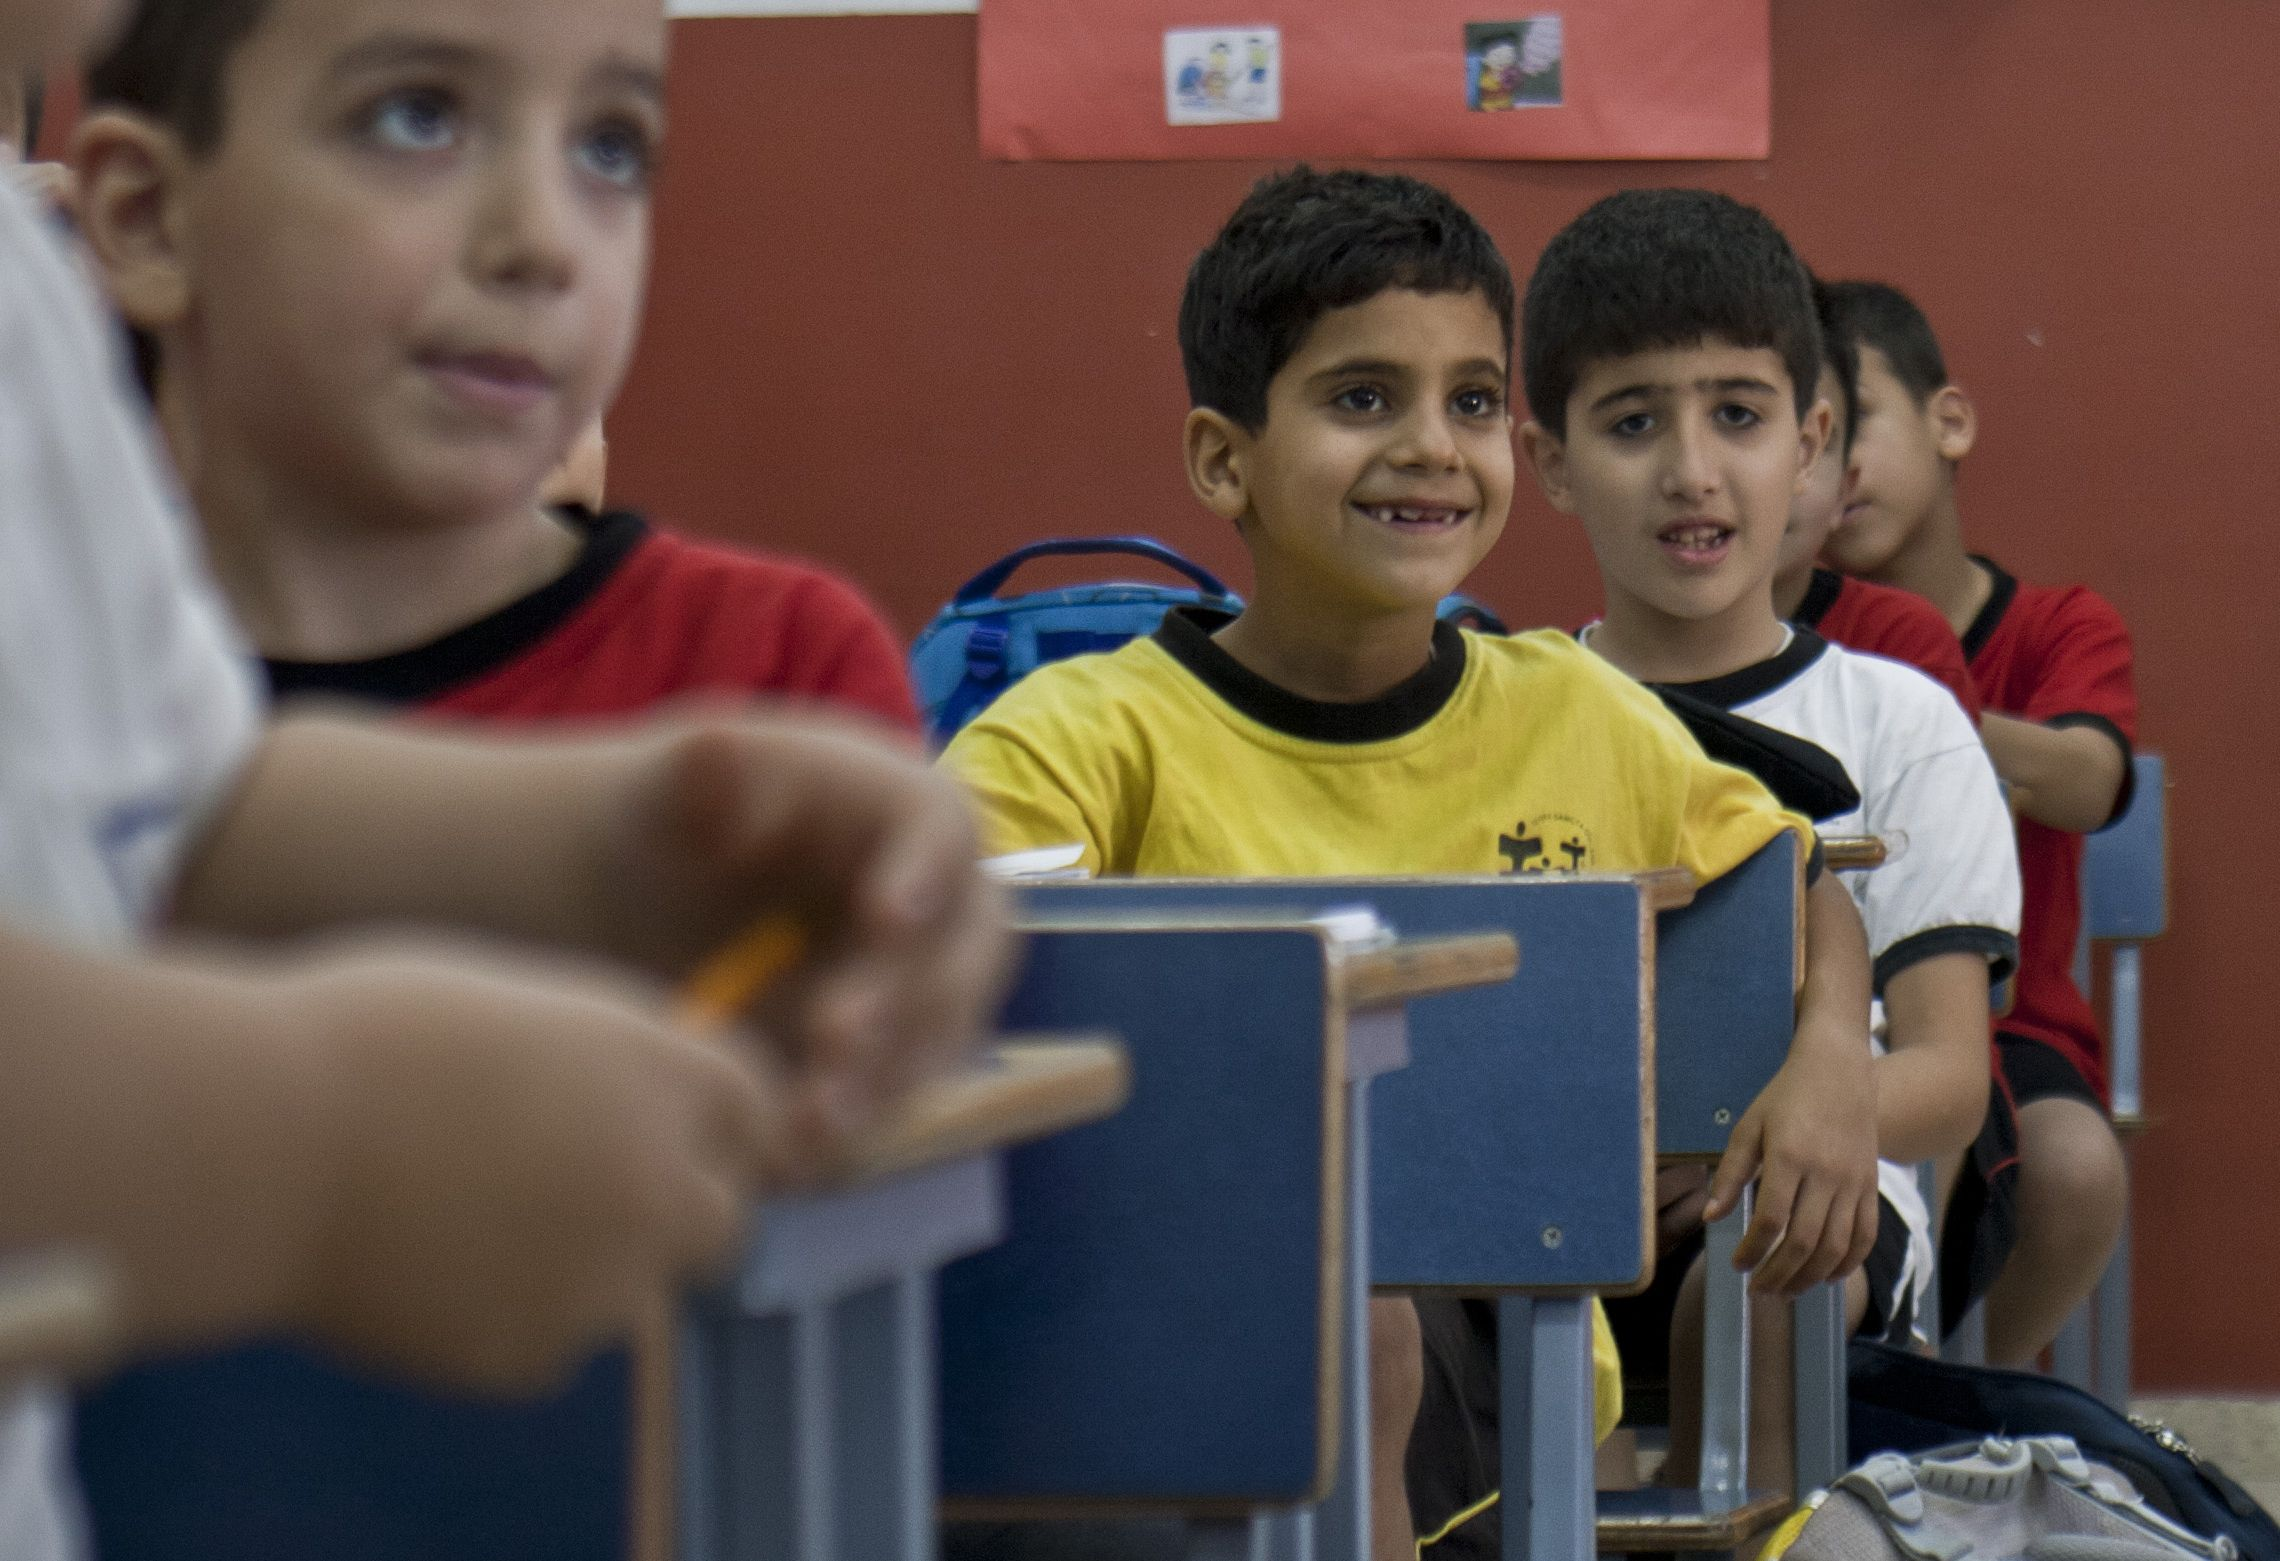 Bethlehem and the children in the Holy Land : Holy Land Association #children #education #Bethlehem #Palestine #NGO #holyland #ATS #help #school #social